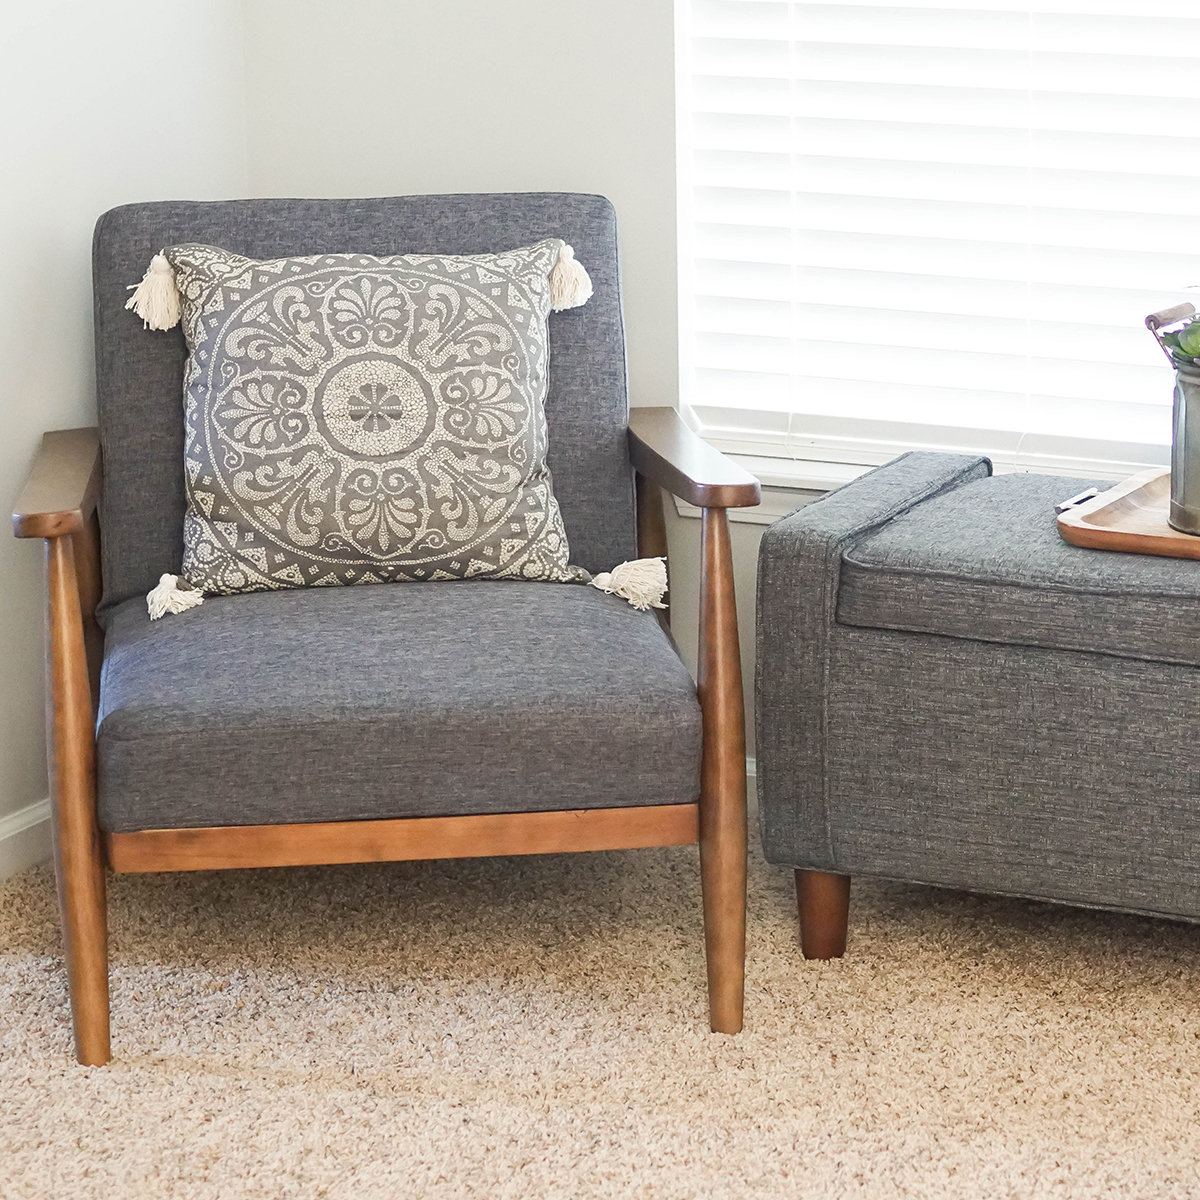 Matching Flynn Mid-Century Chairs and Taupe Medallion Decorative Pillows provide style while a Flynn Mid Century Modern Upholstered Storage Bench adds some extra hideaway space. photo